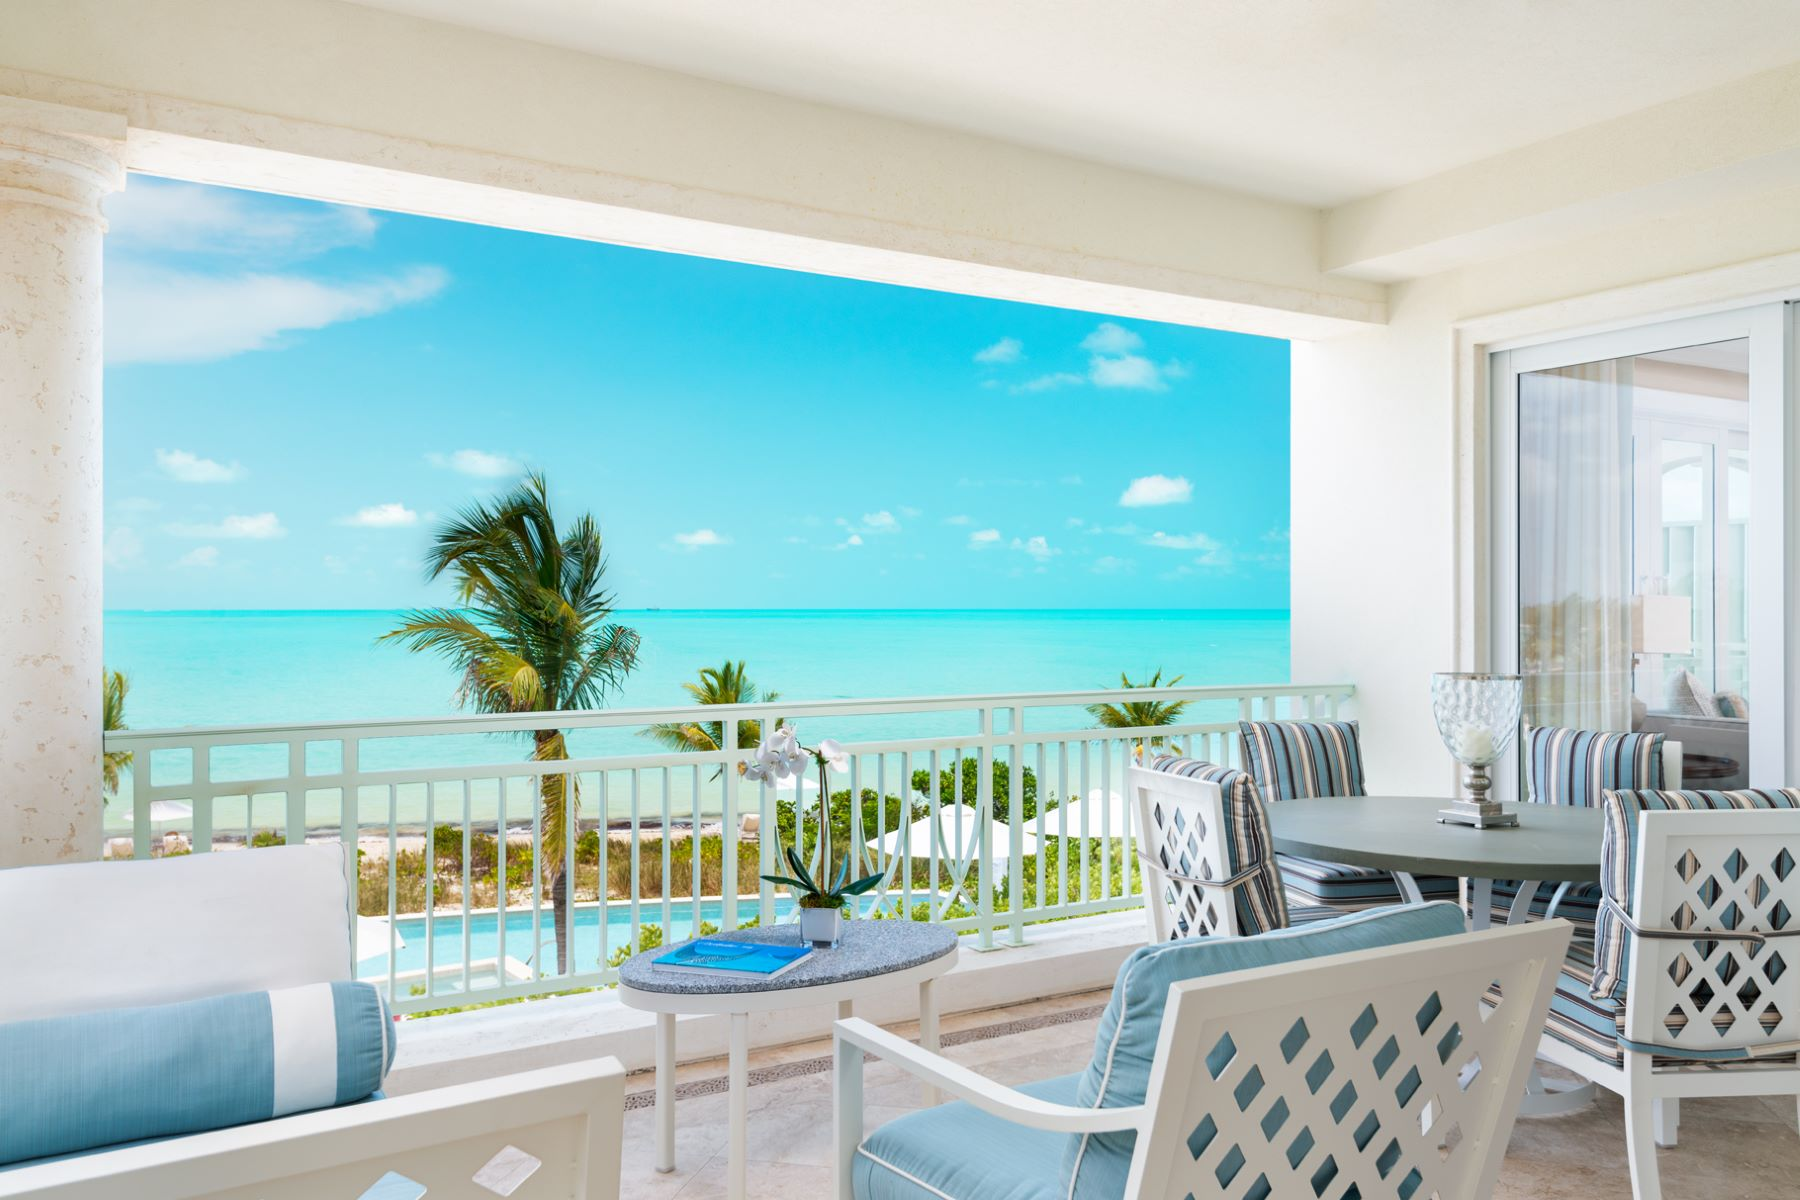 Condominium for Sale at The Shore Club ~ Suite 1201.02.03 The Shore Club - Suite 1201.02.03 Long Bay, Providenciales TCI Turks And Caicos Islands